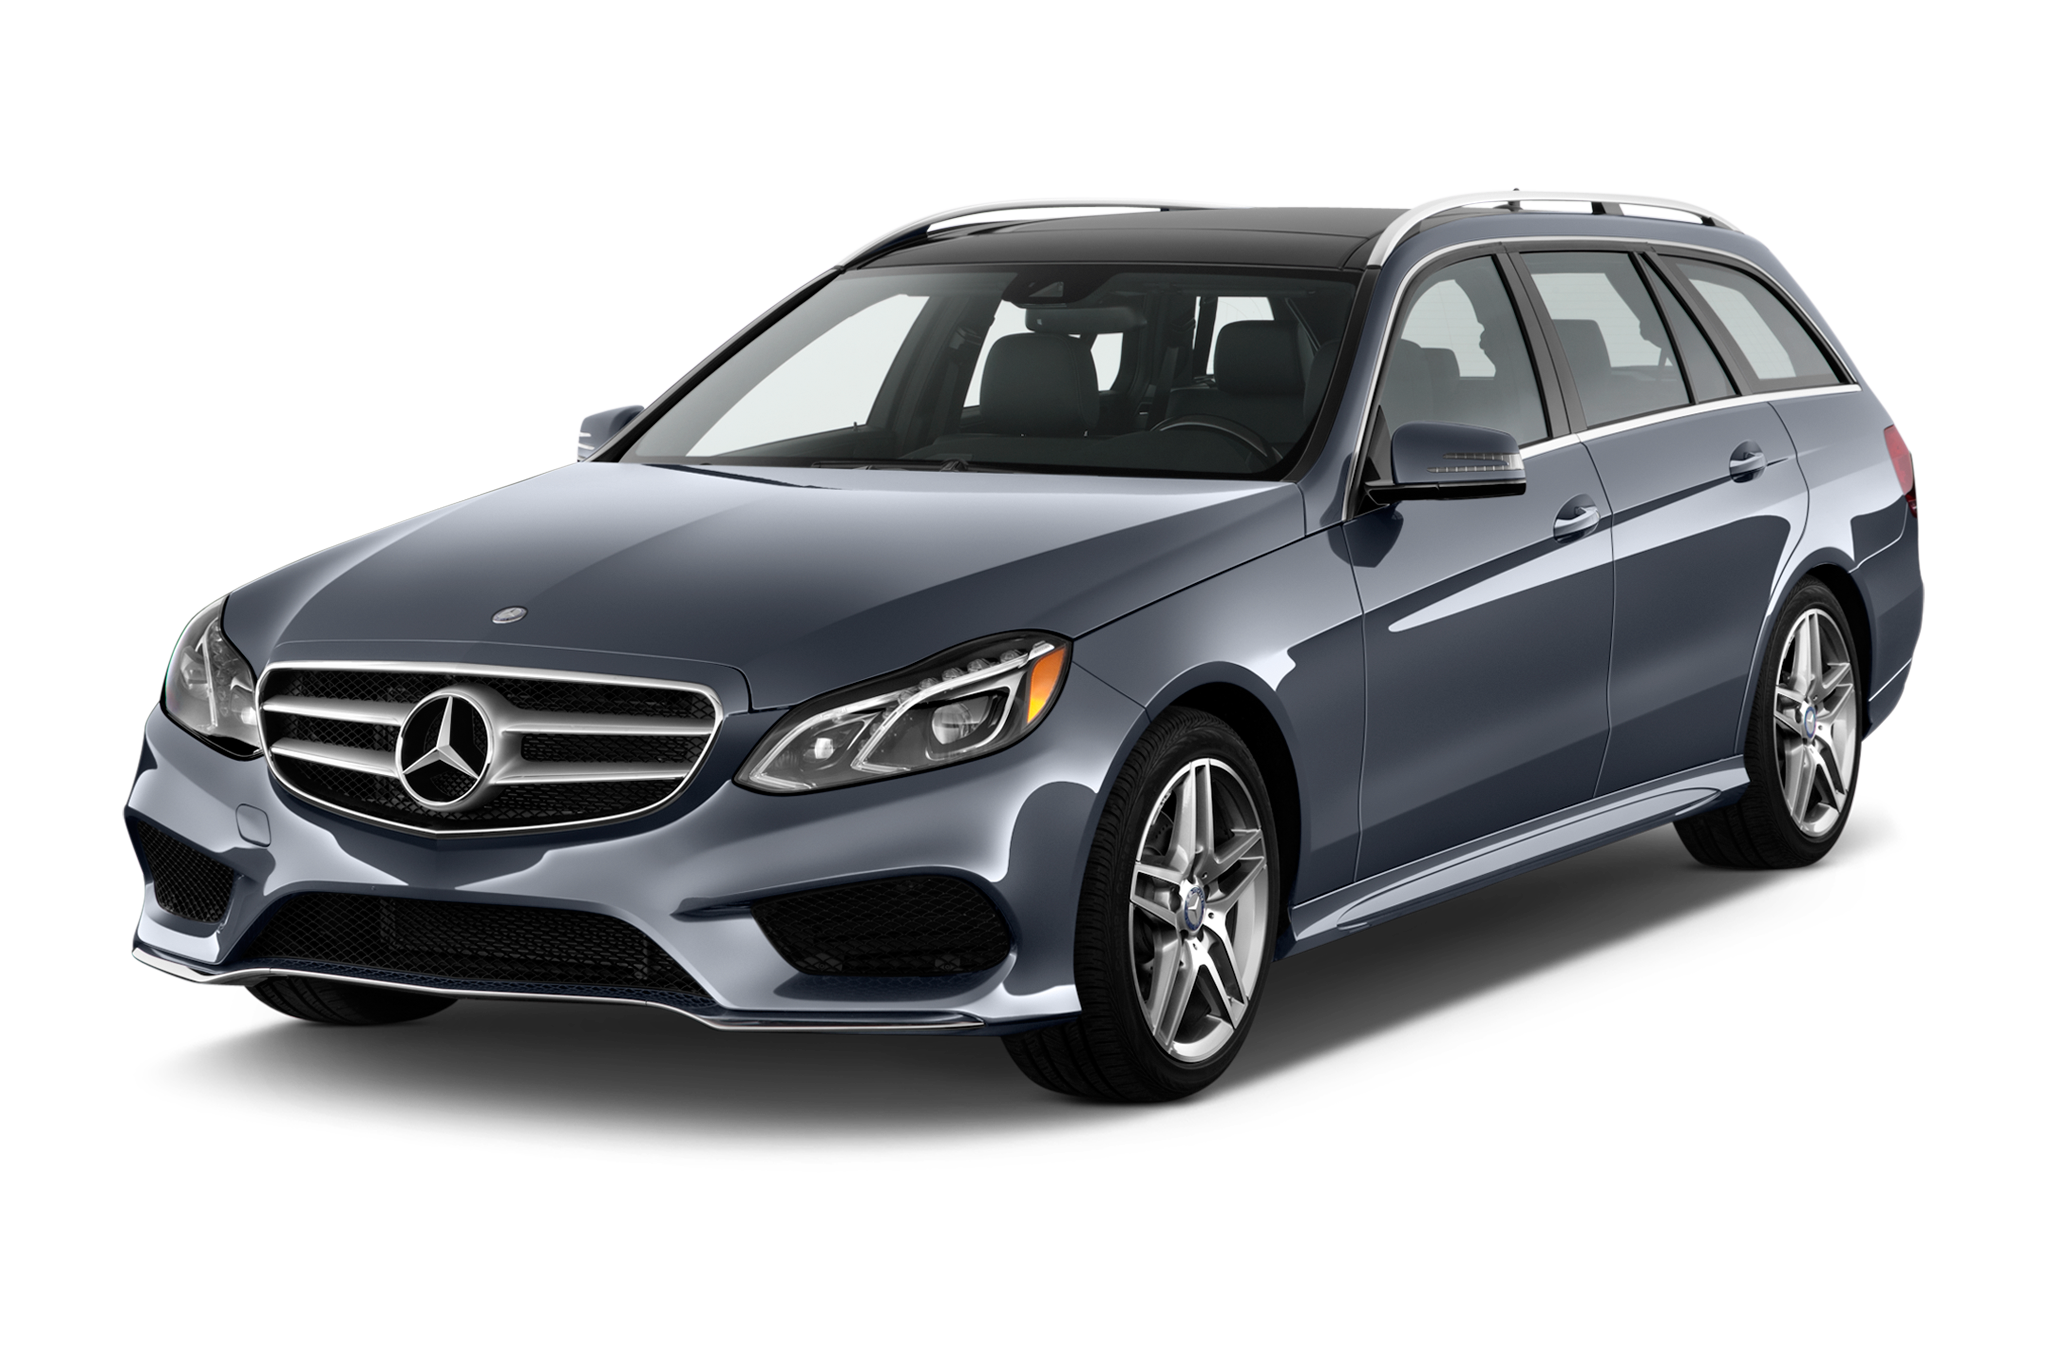 2015 mercedes benz e250 bluetec review for Mercedes benz ratings